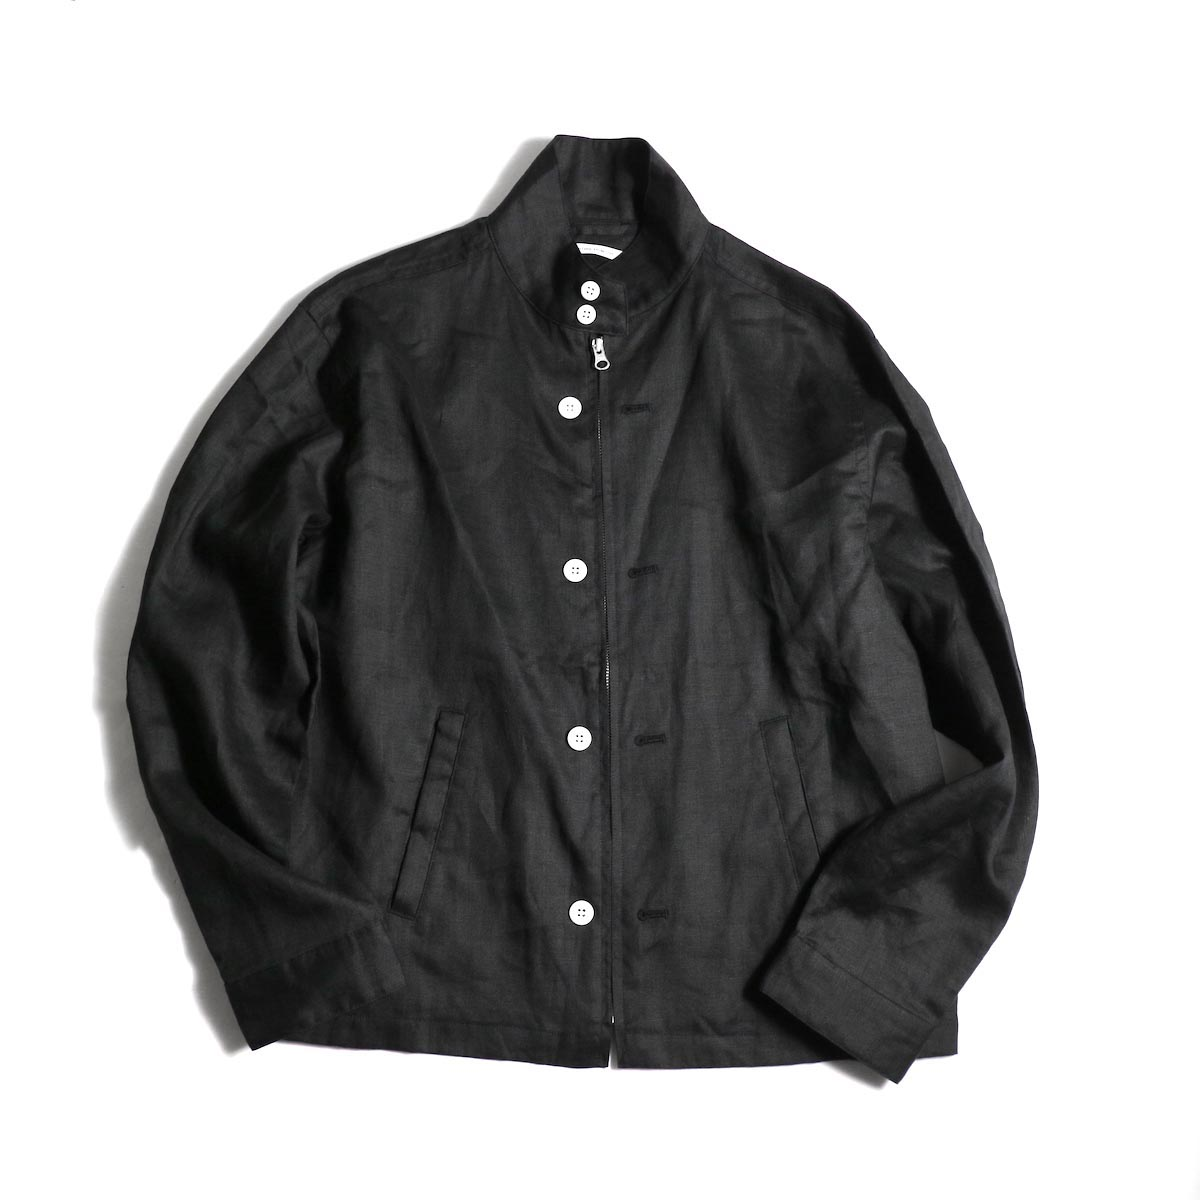 "FUTURE PRIMITIVE / FP HARRINGTON JKT ""LINEN"" (Black)"